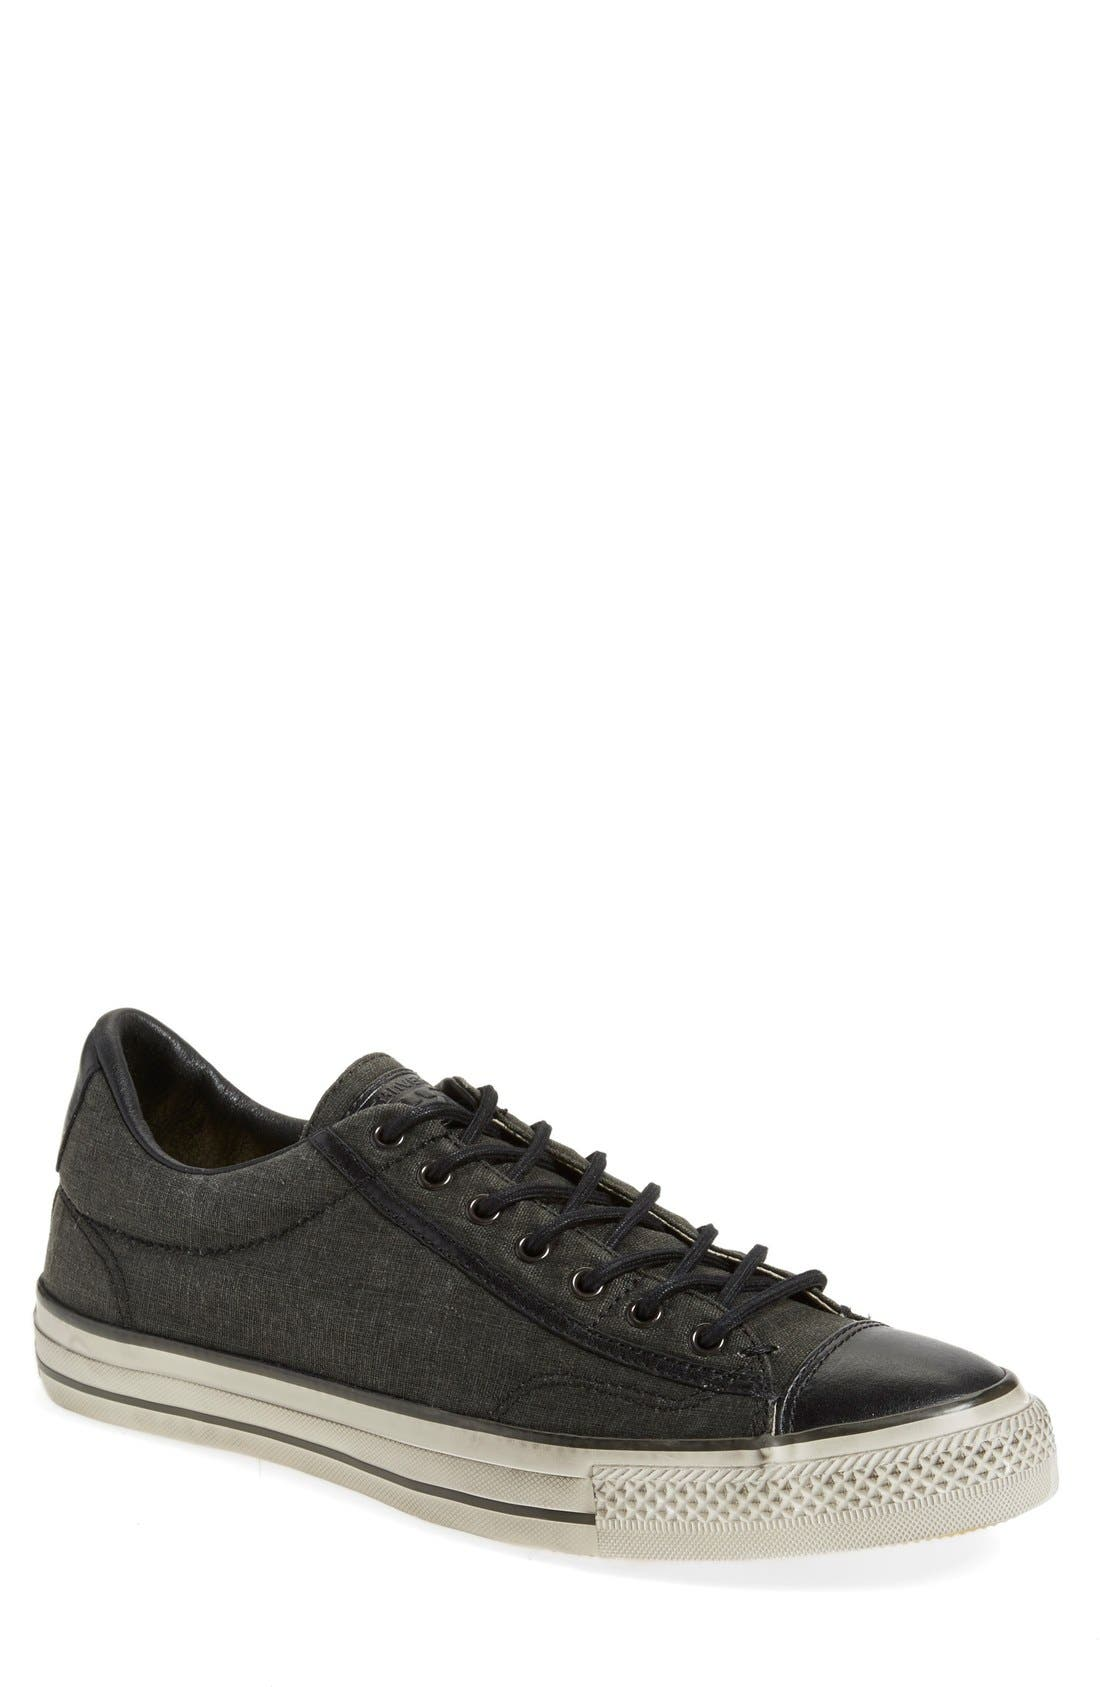 CONVERSE BY JOHN VARVATOS Chuck Taylor<sup>®</sup> All Star<sup>®</sup> Sneaker, Main, color, 013